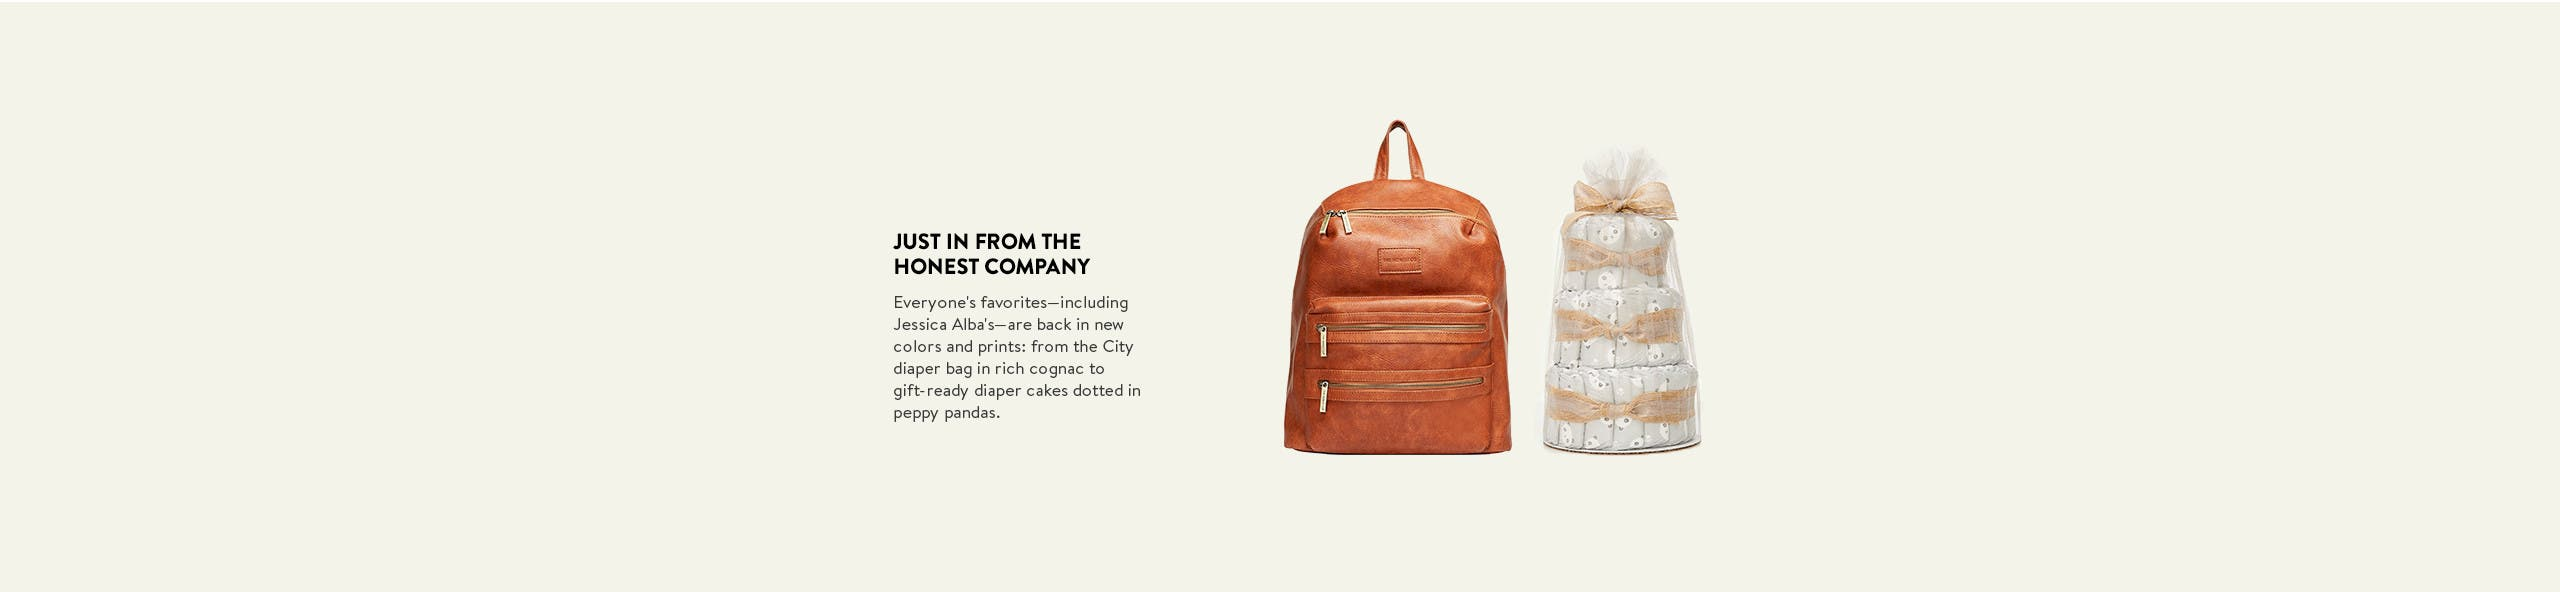 diaper bag designer brands 8r2c  Just in from The Honest Company: the City diaper backpack in cognac